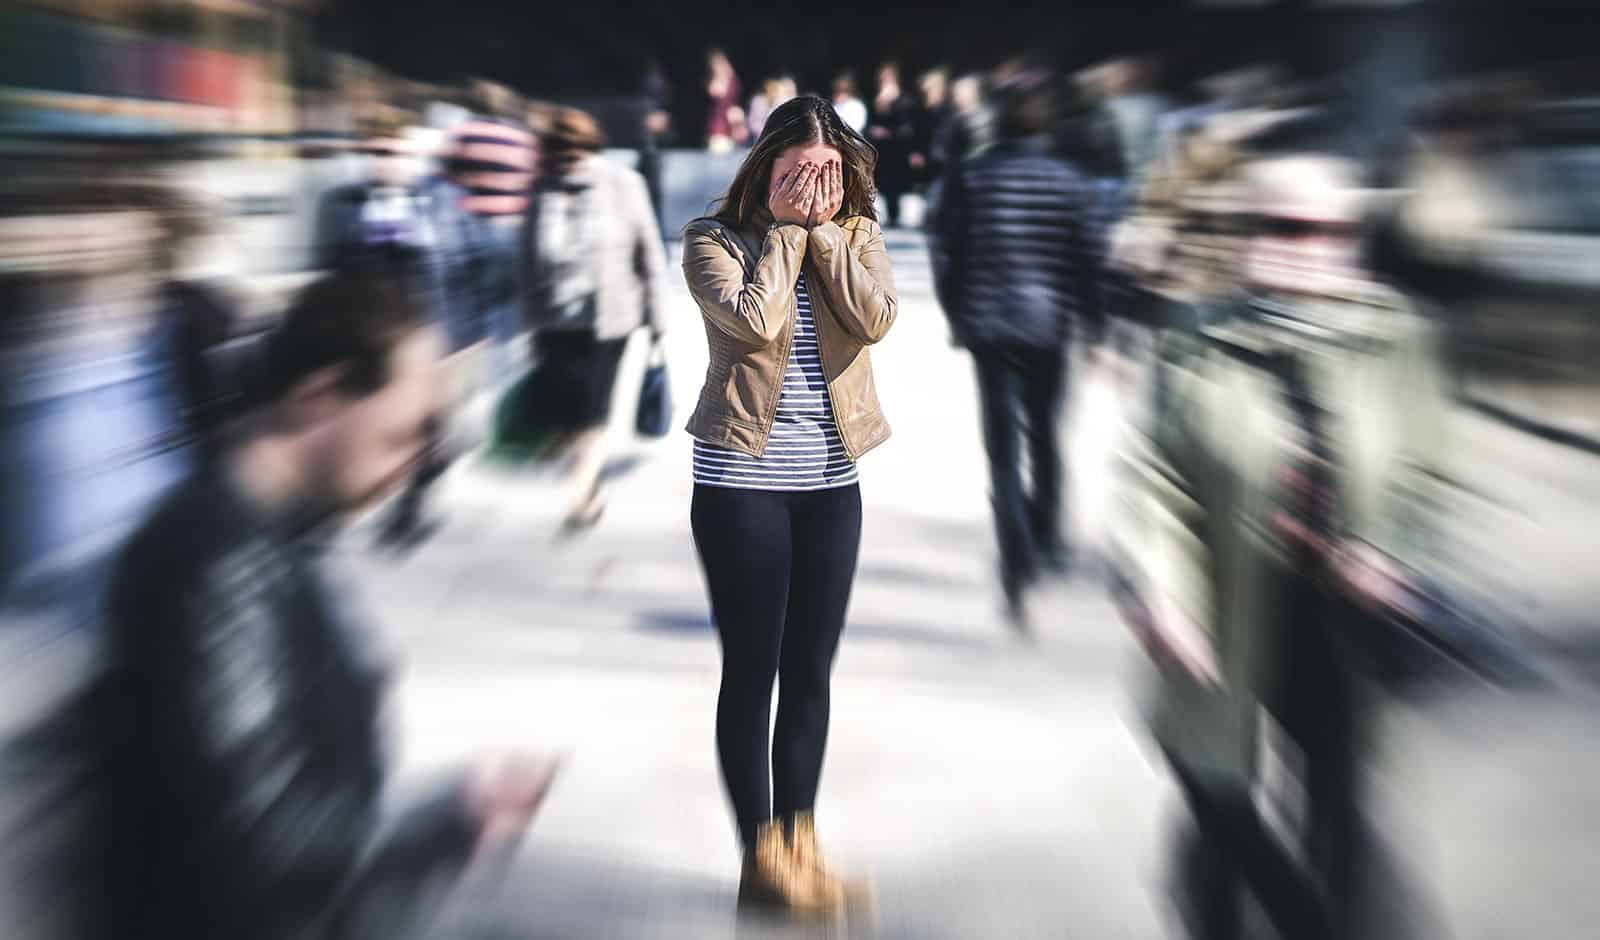 Panic attack in public place. Woman having panic disorder in cit